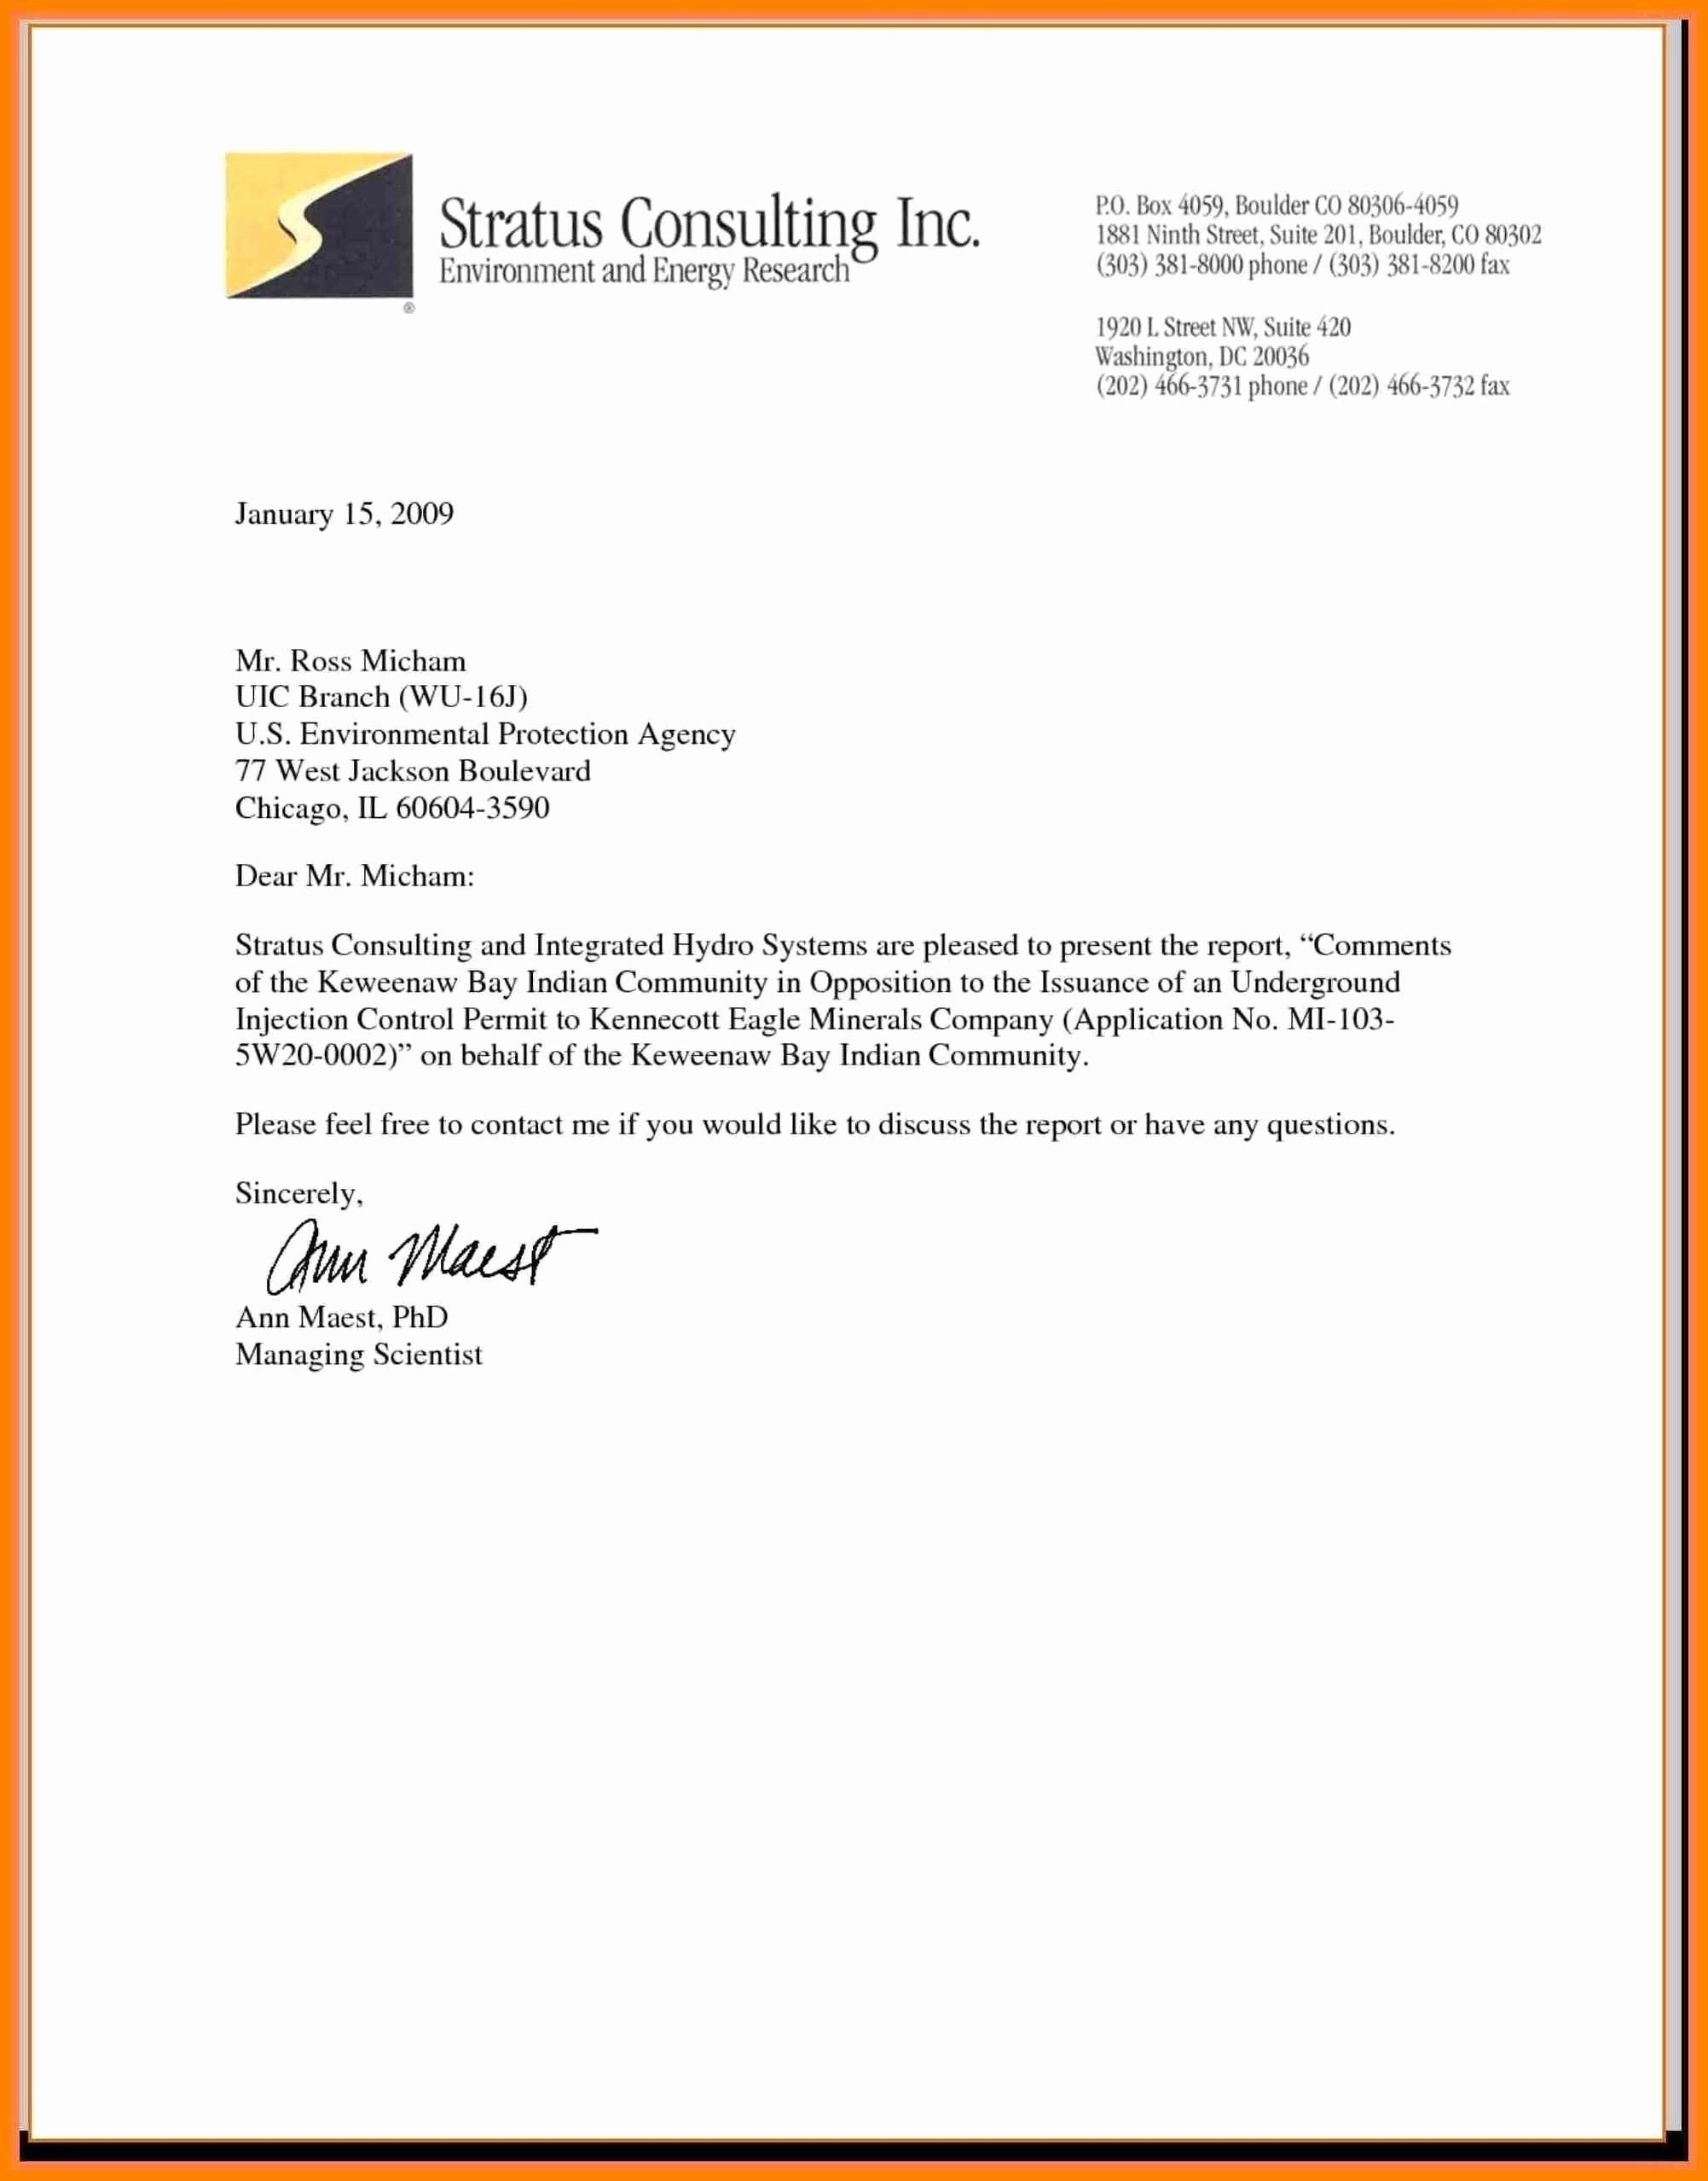 Business Letterhead Template Word Lovely Free Business Letterhead Templates For Word Business Letter Template Company Letterhead Template Letter Template Word